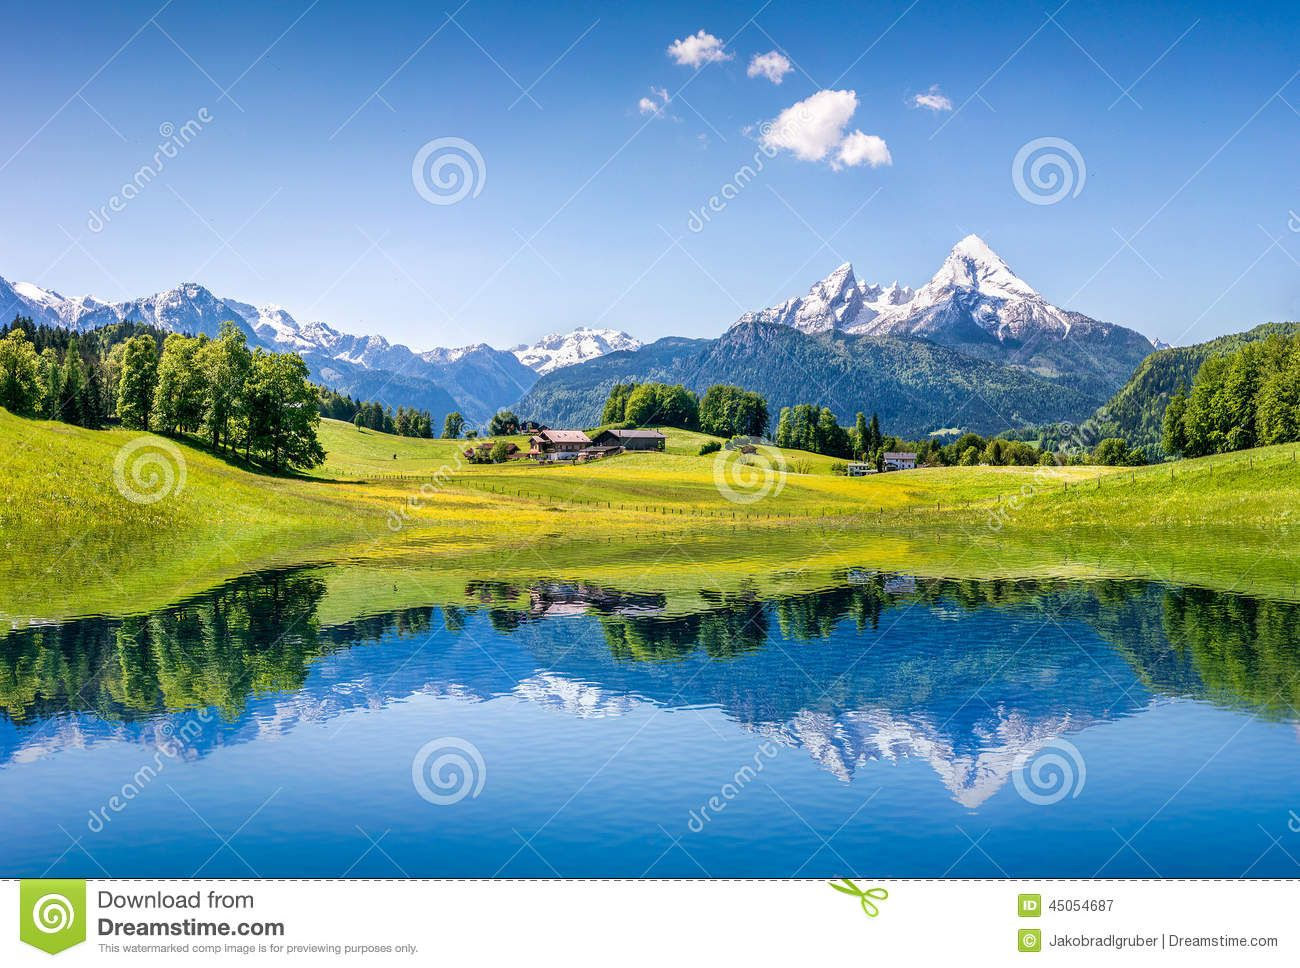 Idyllic Summer Landscape With Clear Mountain Lake In The Alps Download From Over 58 Million High Quality Sto Summer Landscape Mountain Portrait Mountain Lake